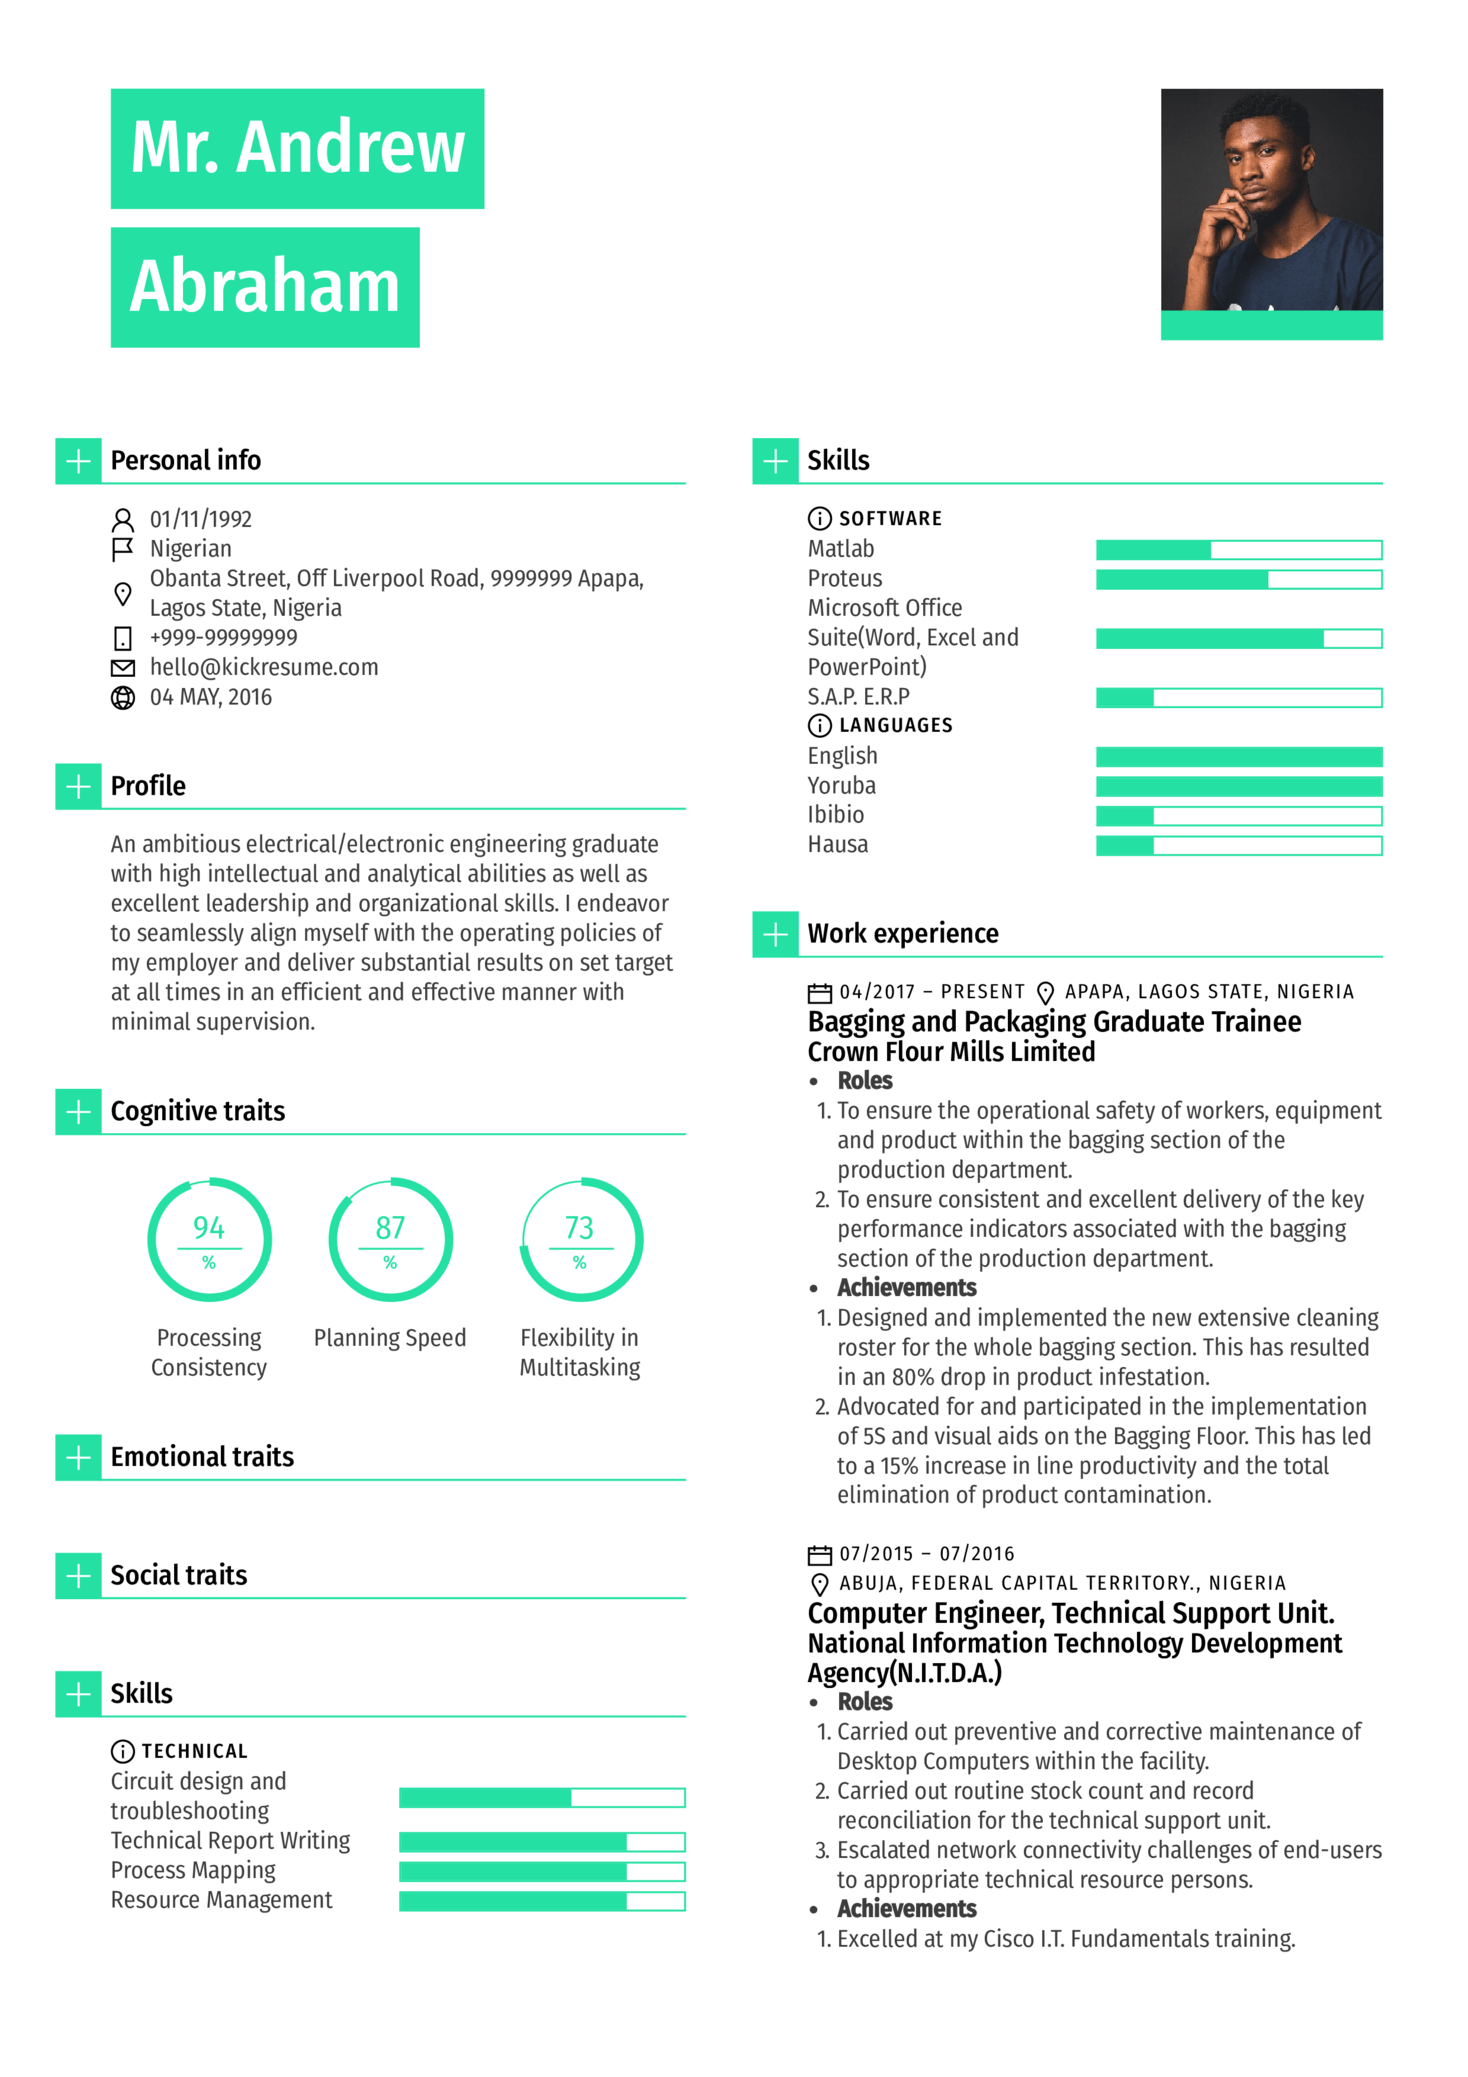 Graduate Engineer Trainee at Olam Resume Template (Part 1)